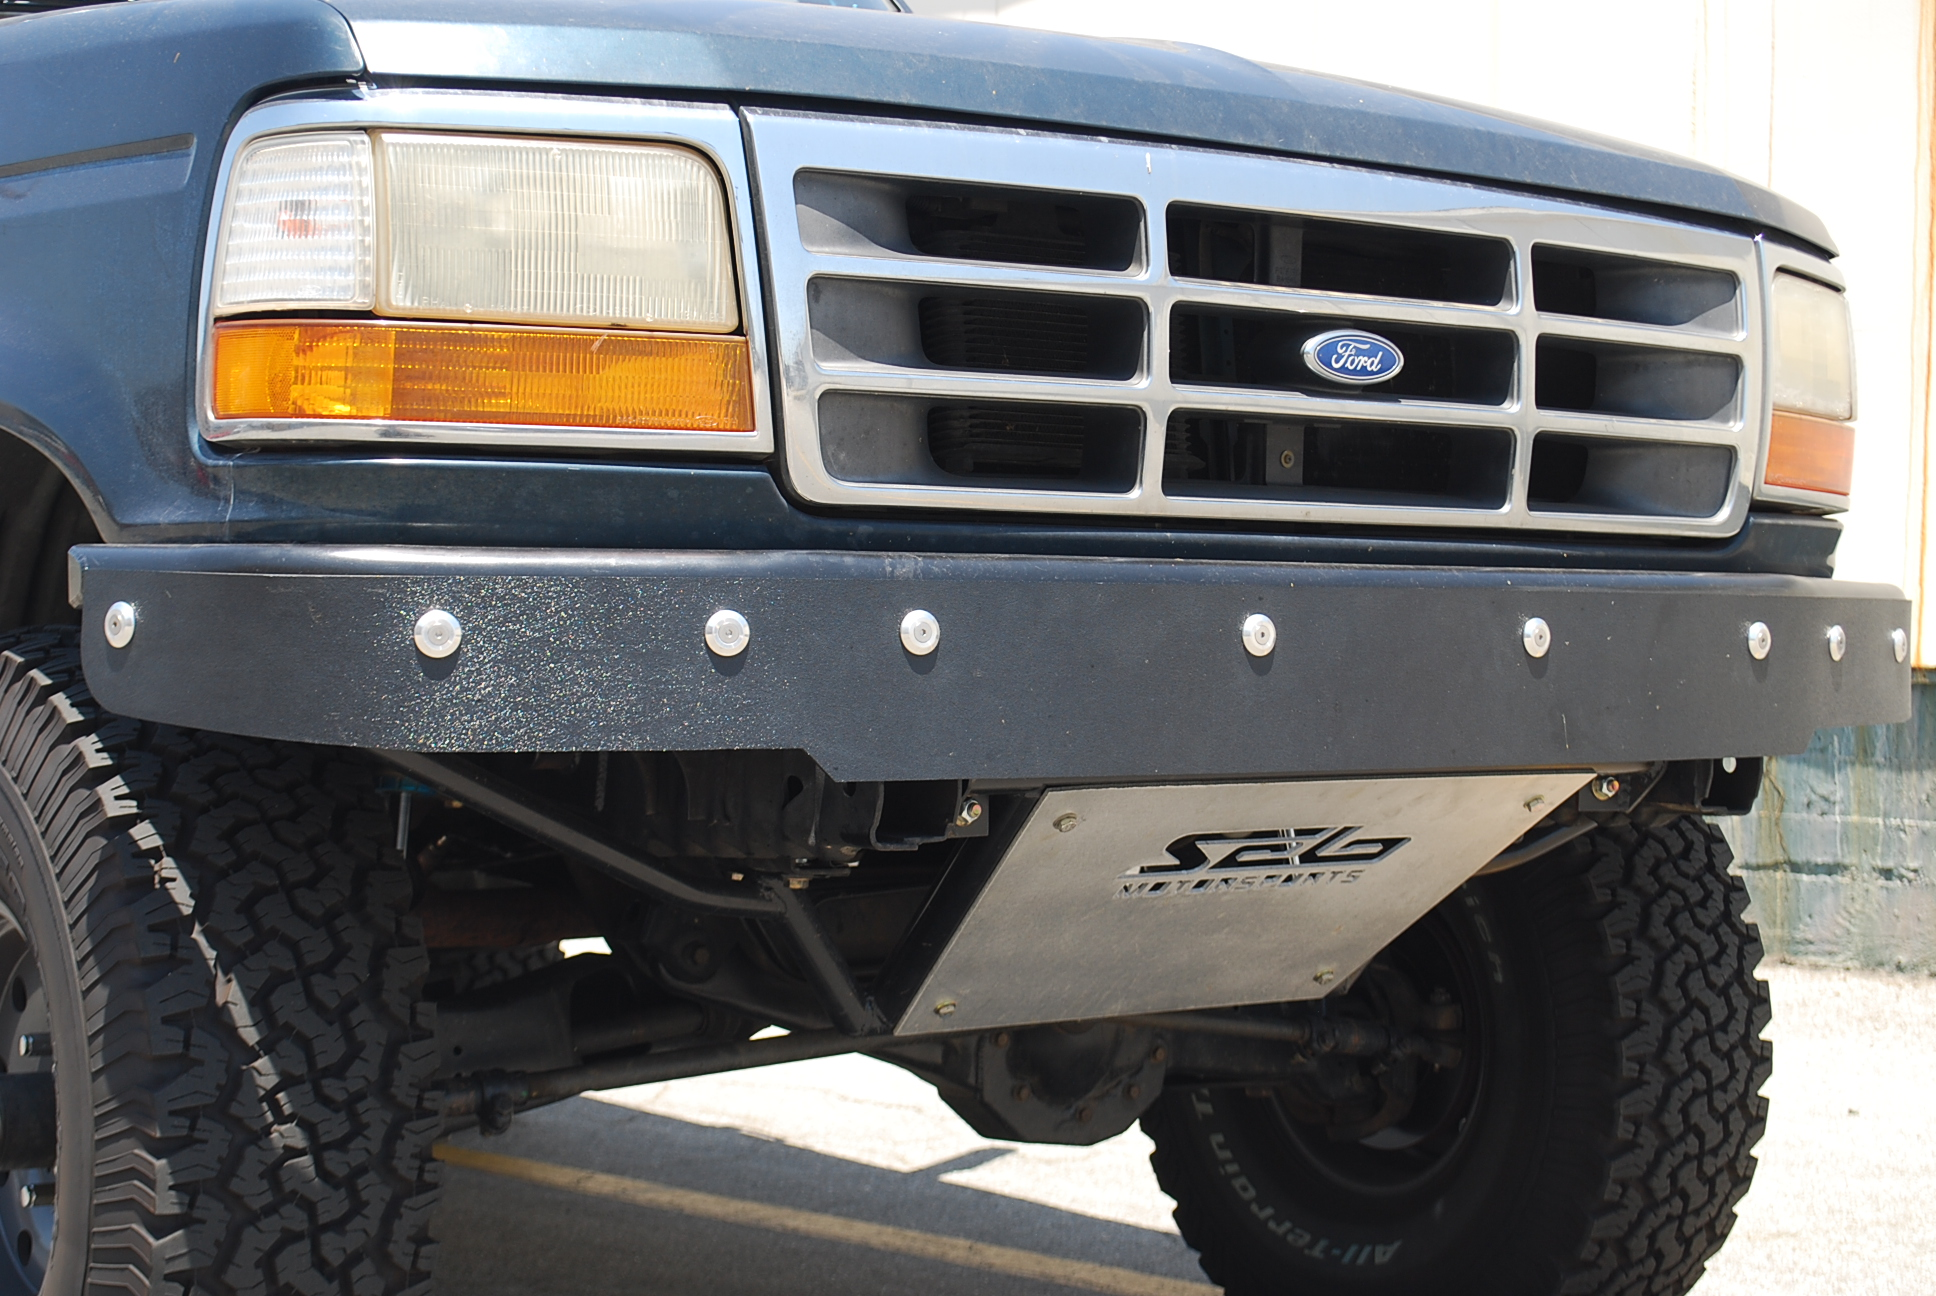 Ford bronco f 150 prerunner front bumper with abs for Garage ford saval valence